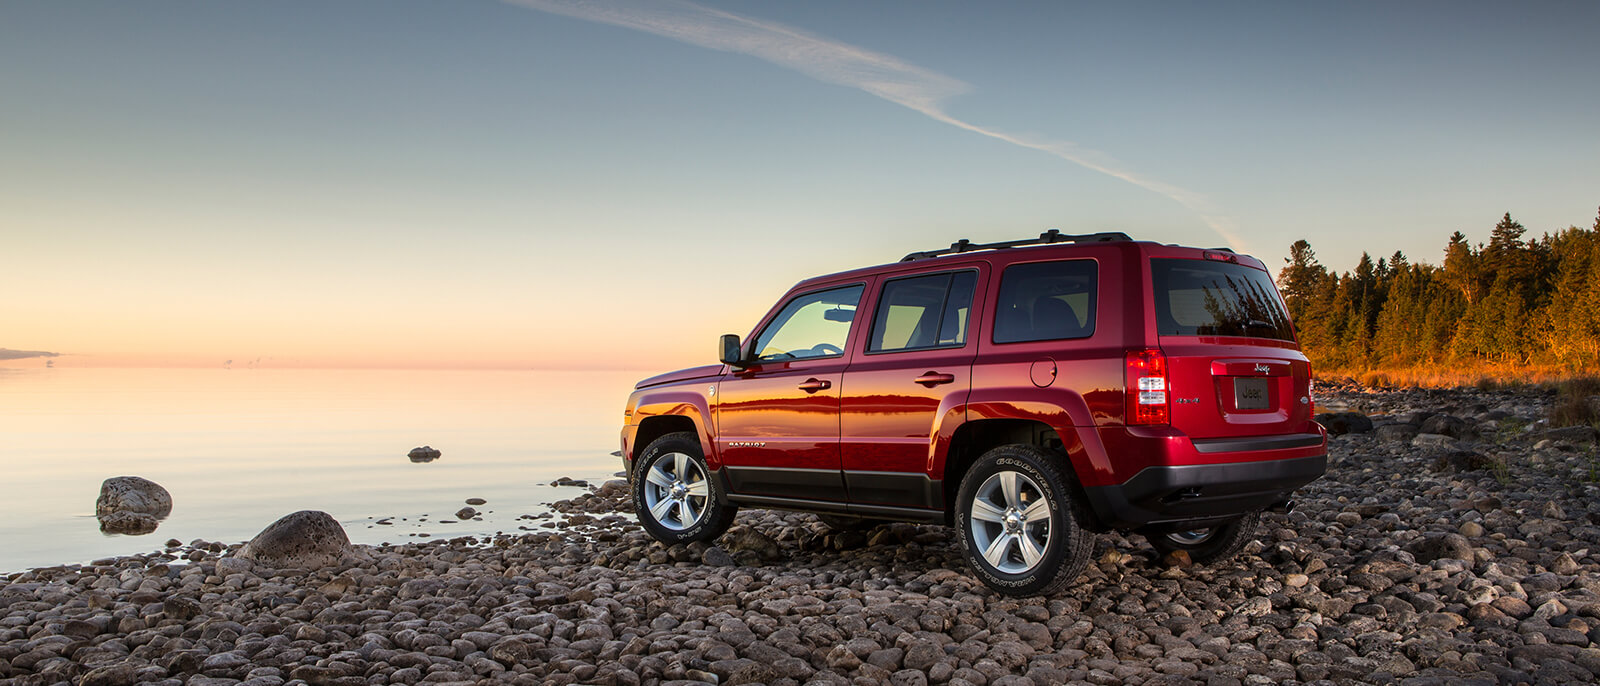 2017 Jeep Patriot Specs Features And Pricing Jackson Dodge 2011 Fuel Filter Parked